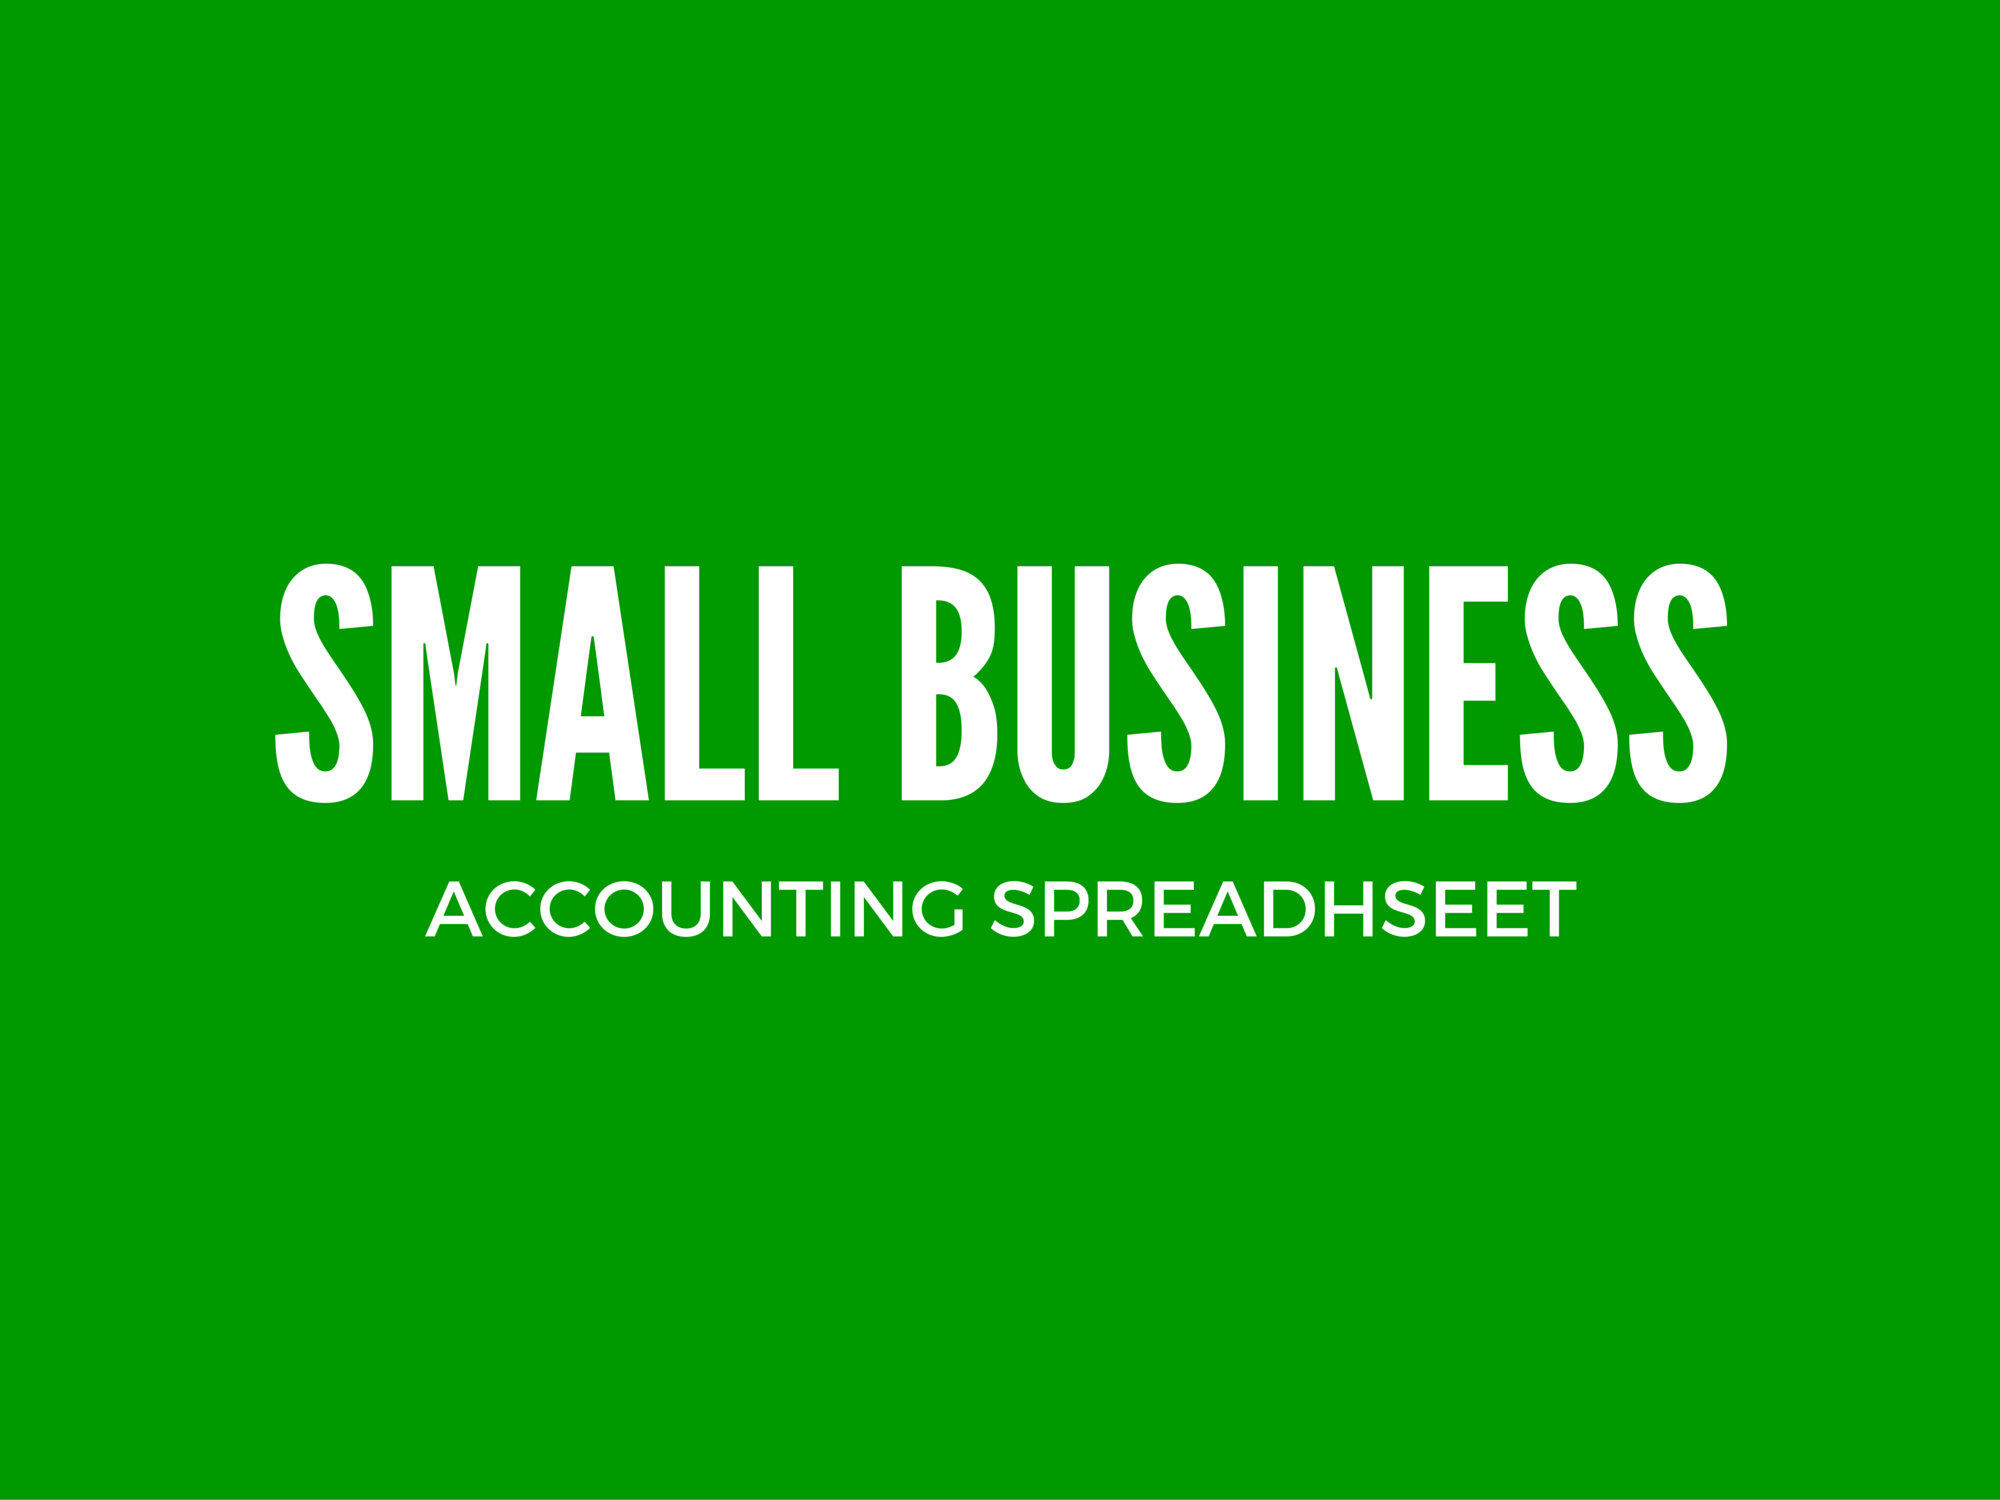 Excel Spreadsheet For Small Business Income And Expenses Within Income And Expenditure Template For Small Business  Excel